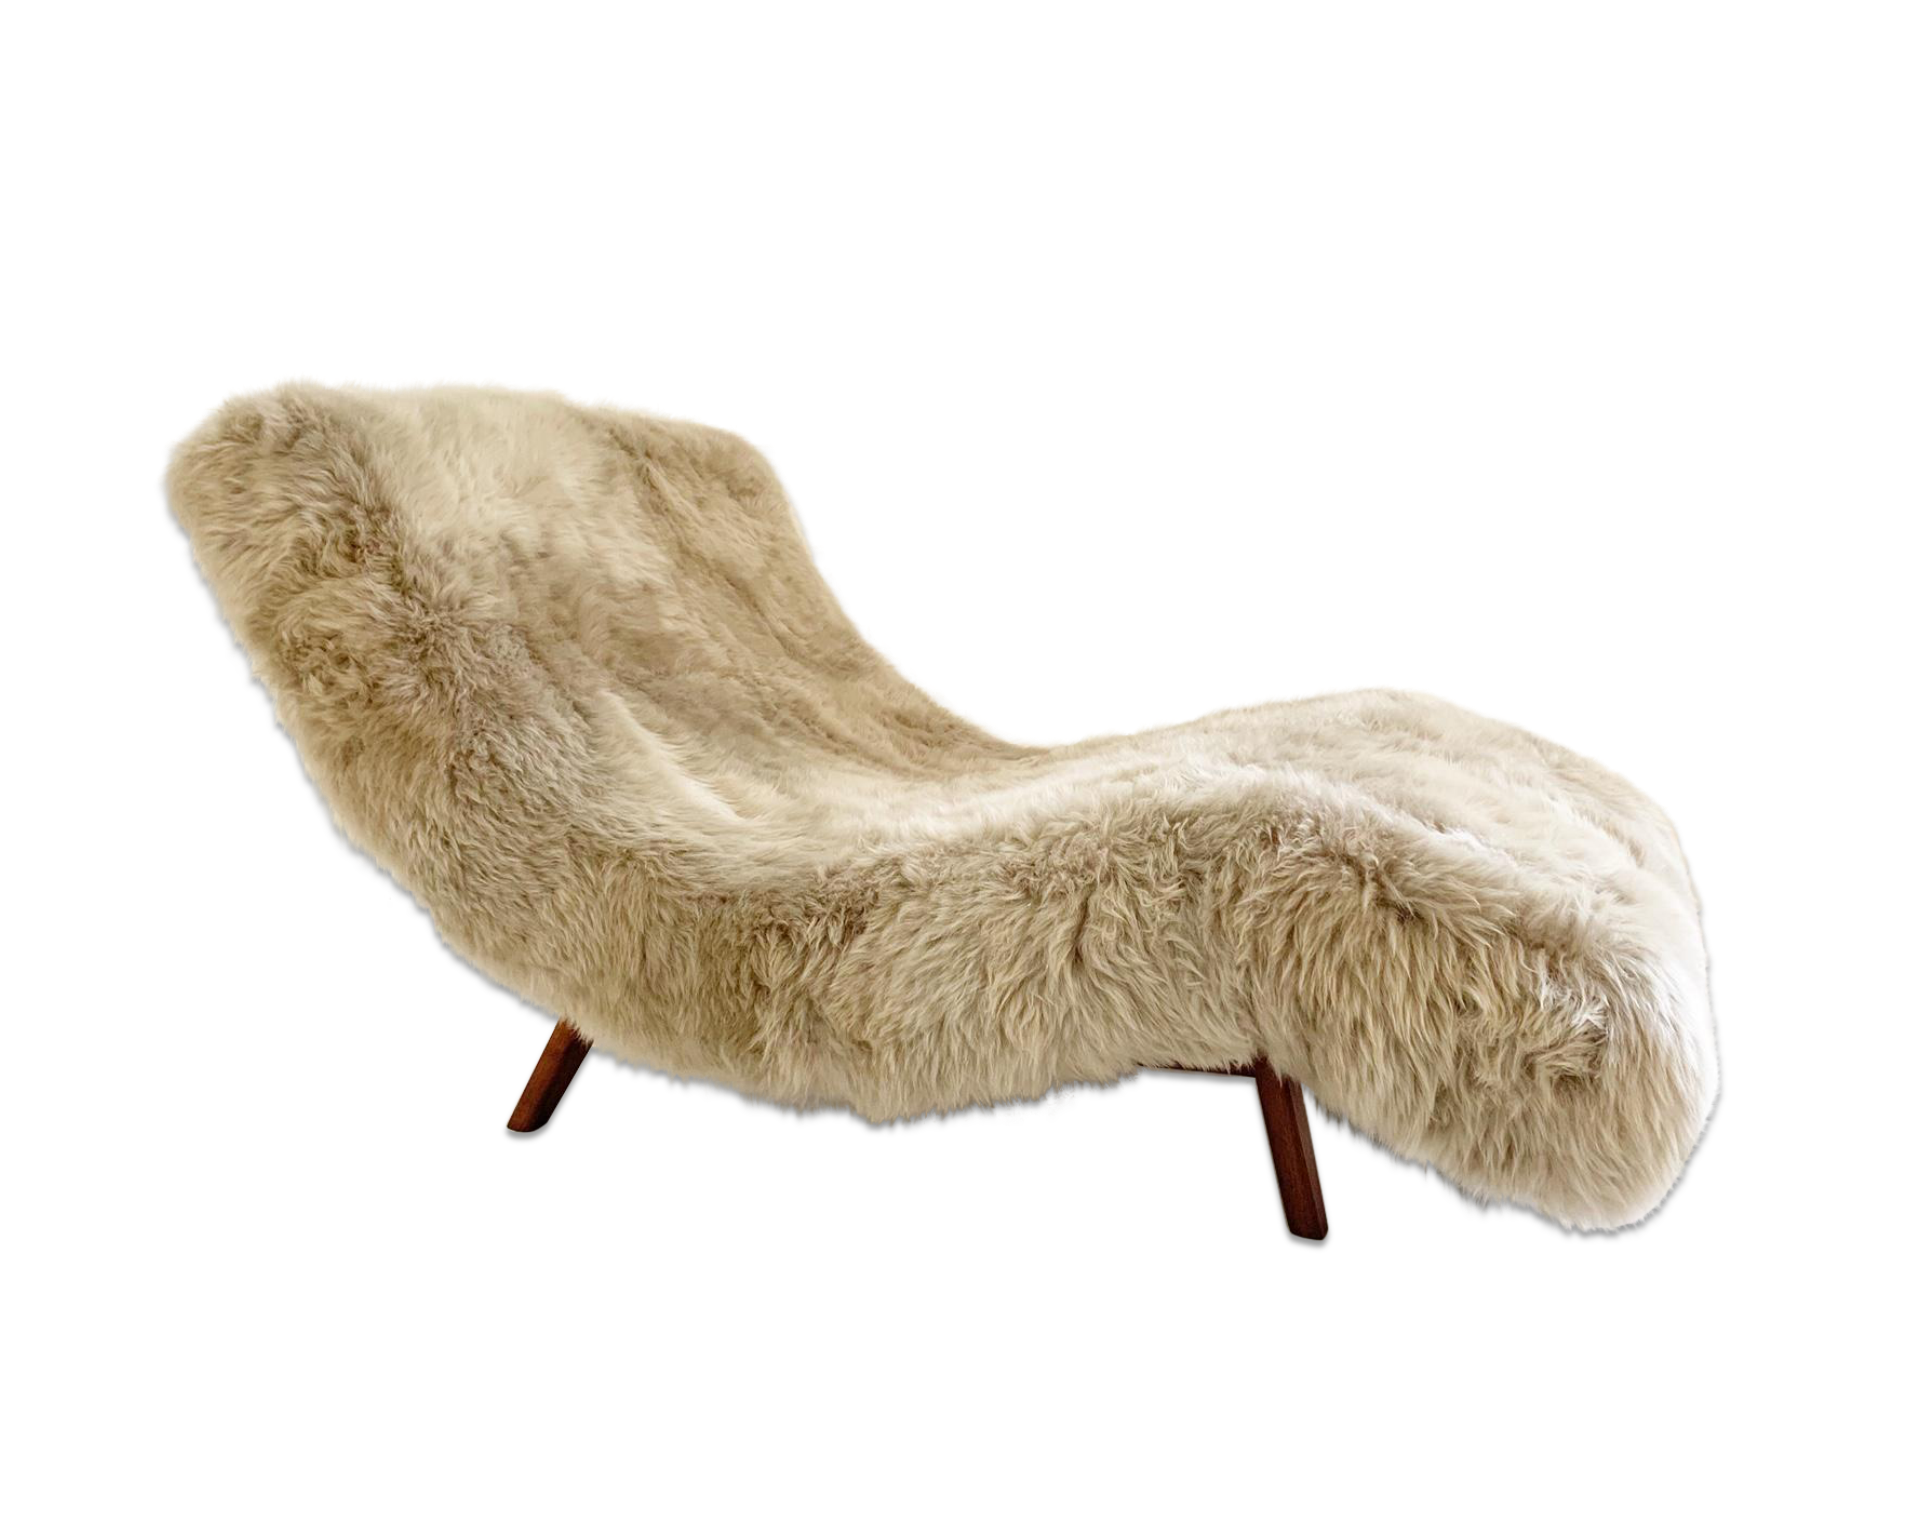 Wave Chaise Lounge in New Zealand Sheepskin